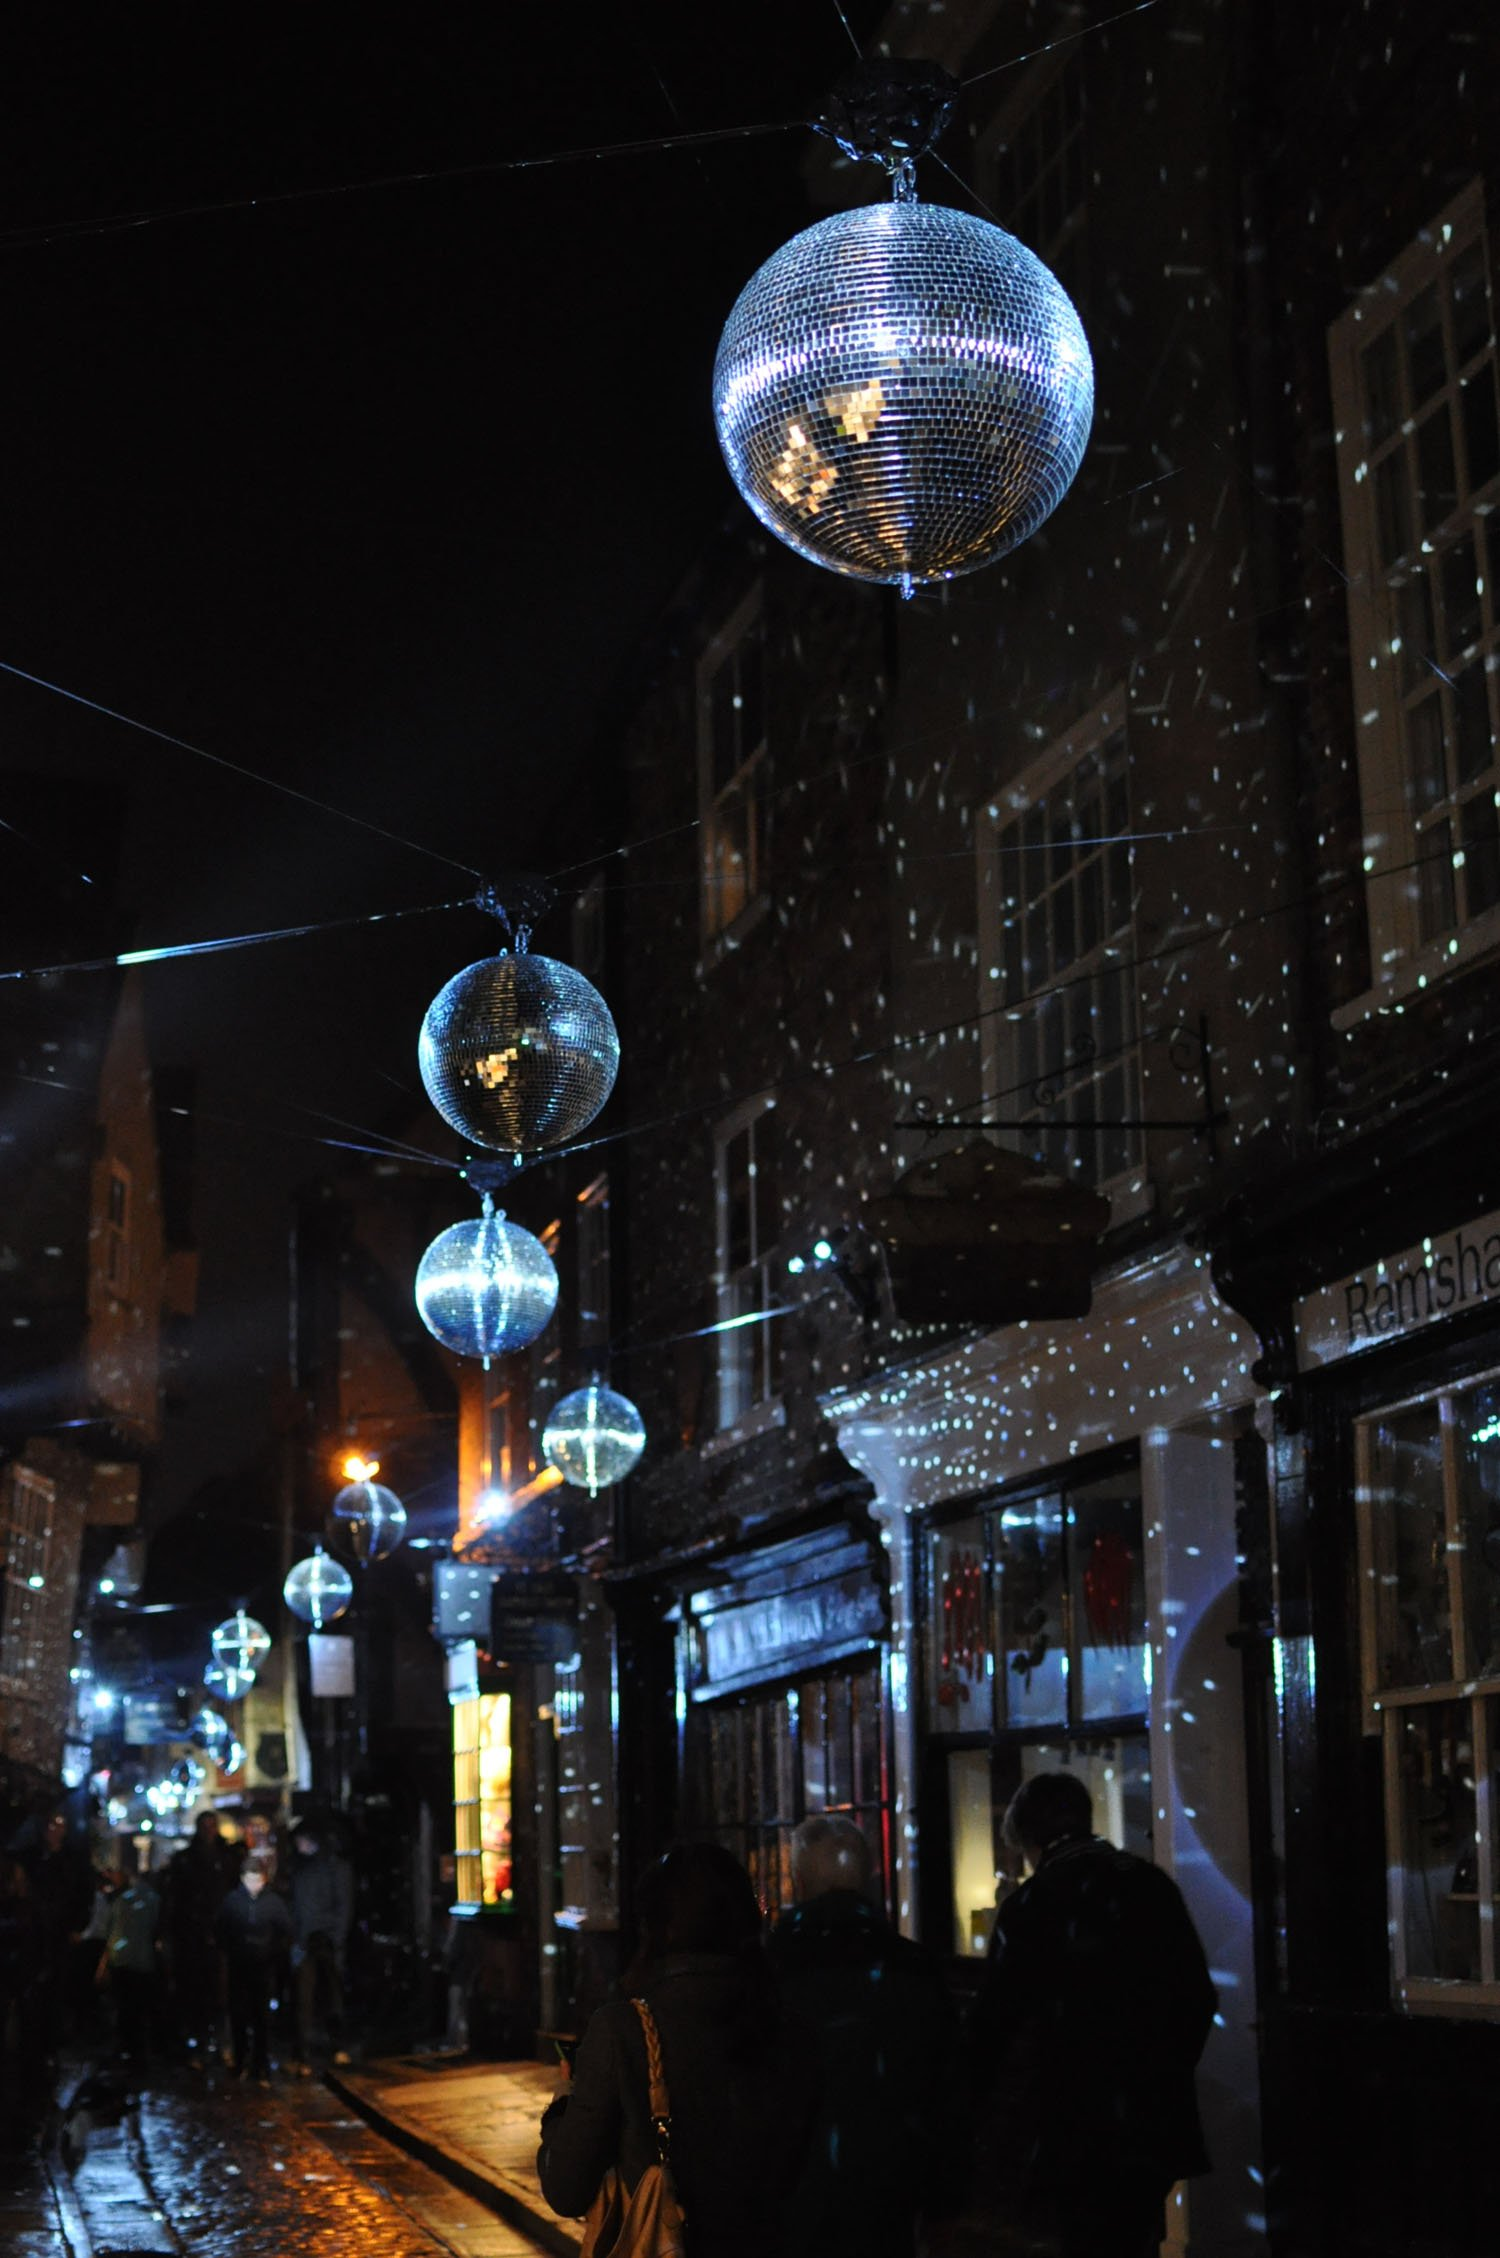 Illuminating York 2015 - The Shambles